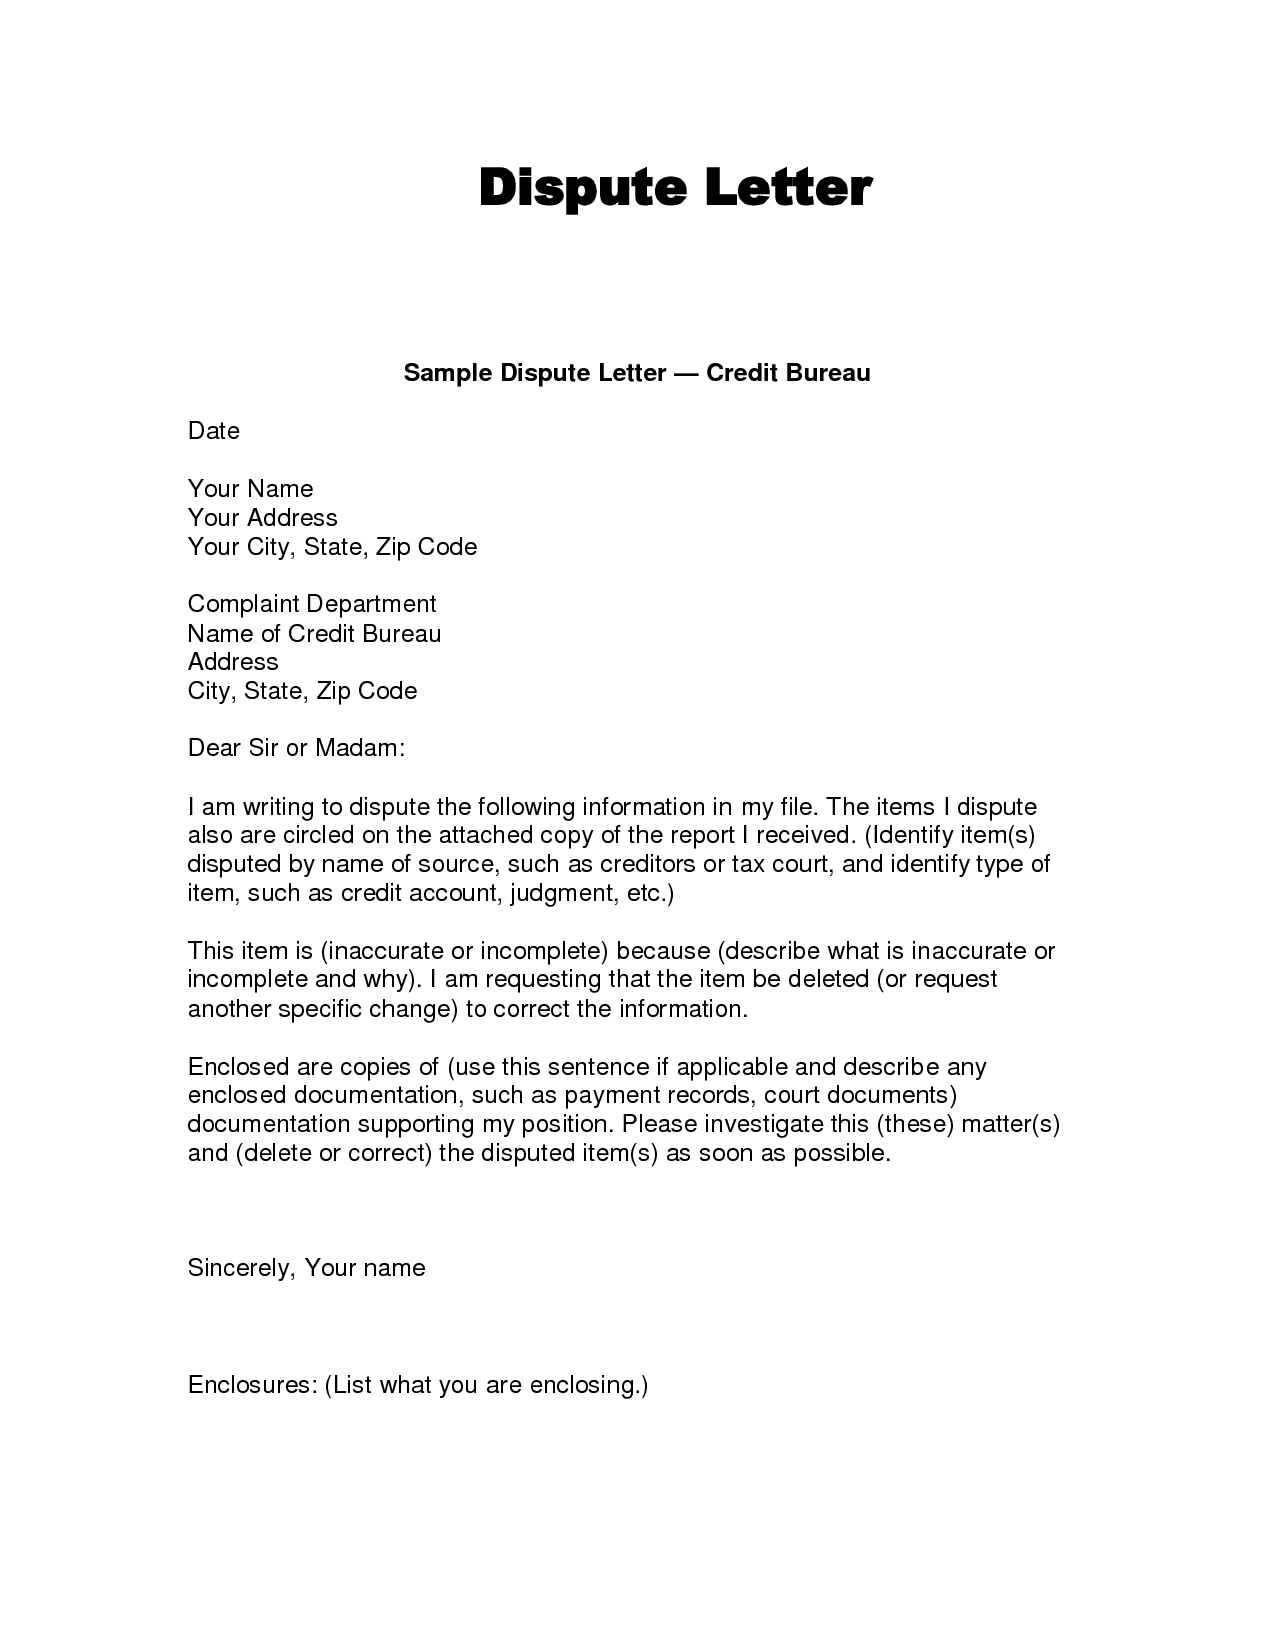 credit report dispute letter template example-credit dispute letter templates 8-d